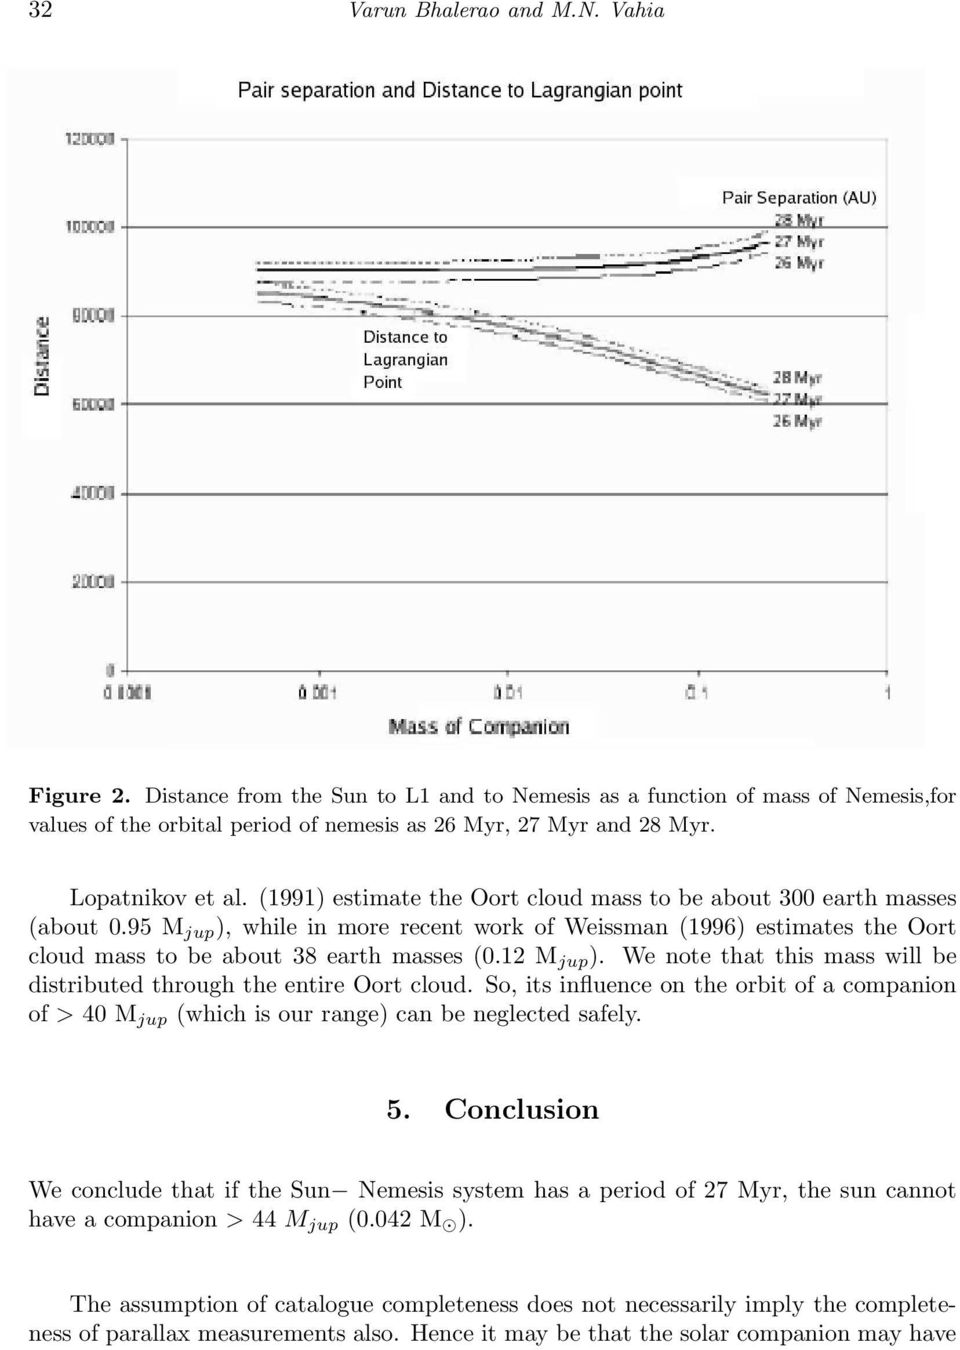 95 M jup ), while in more recent work of Weissman (1996) estimates the Oort cloud mass to be about 38 earth masses (0.12 M jup ).